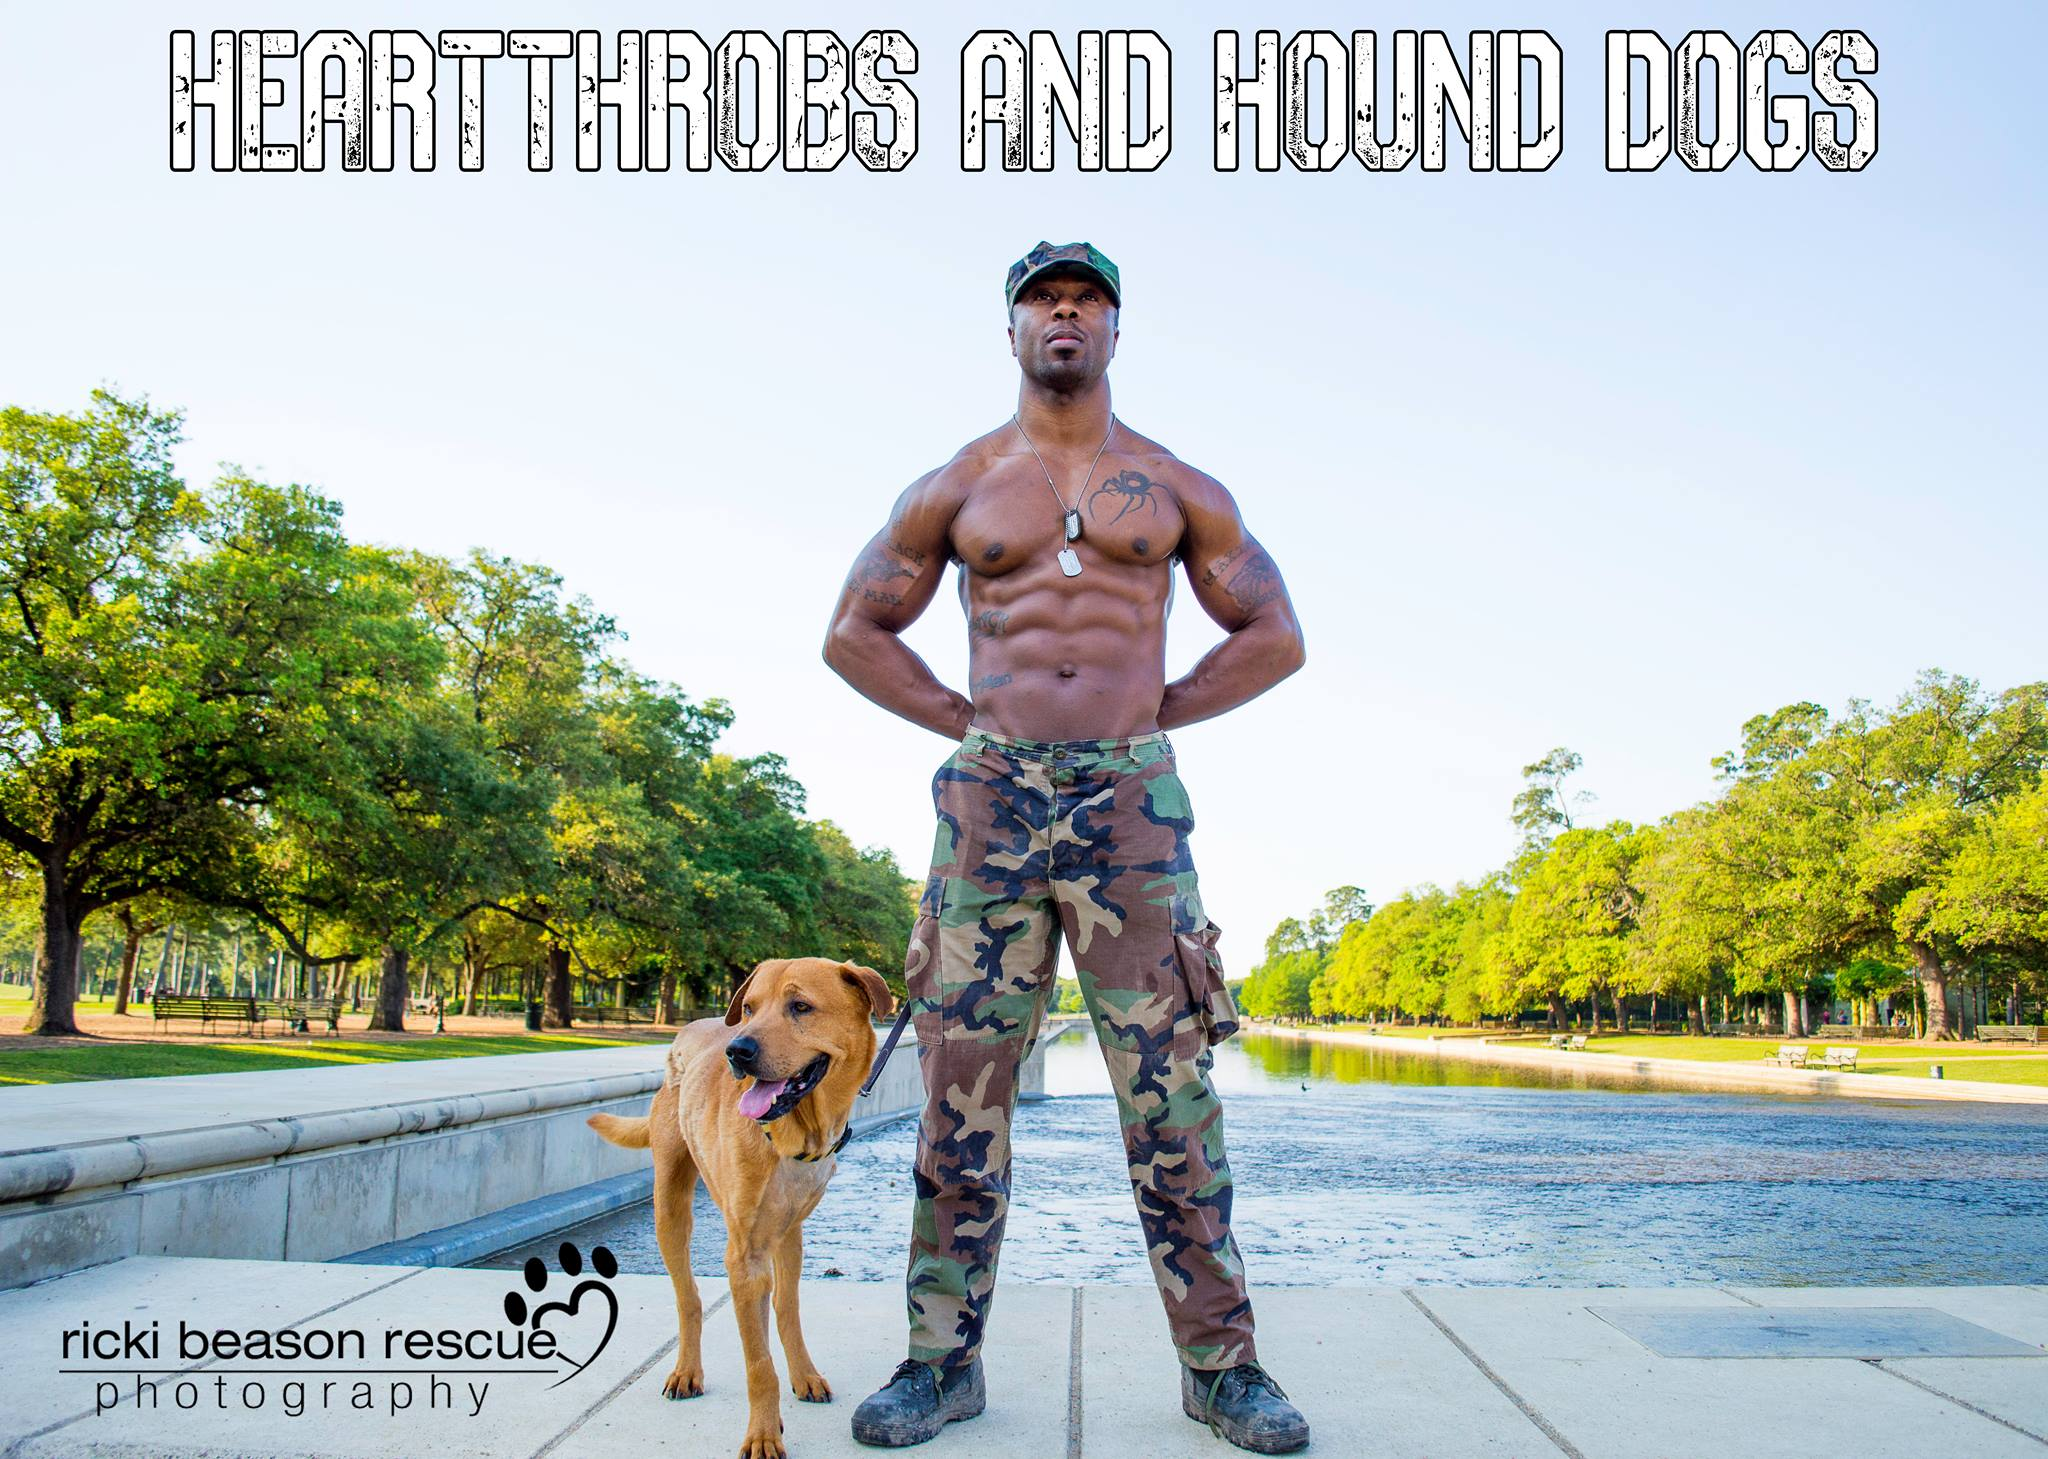 Heartthrobs and Hound Dogs Image - The SITREP Military Blog